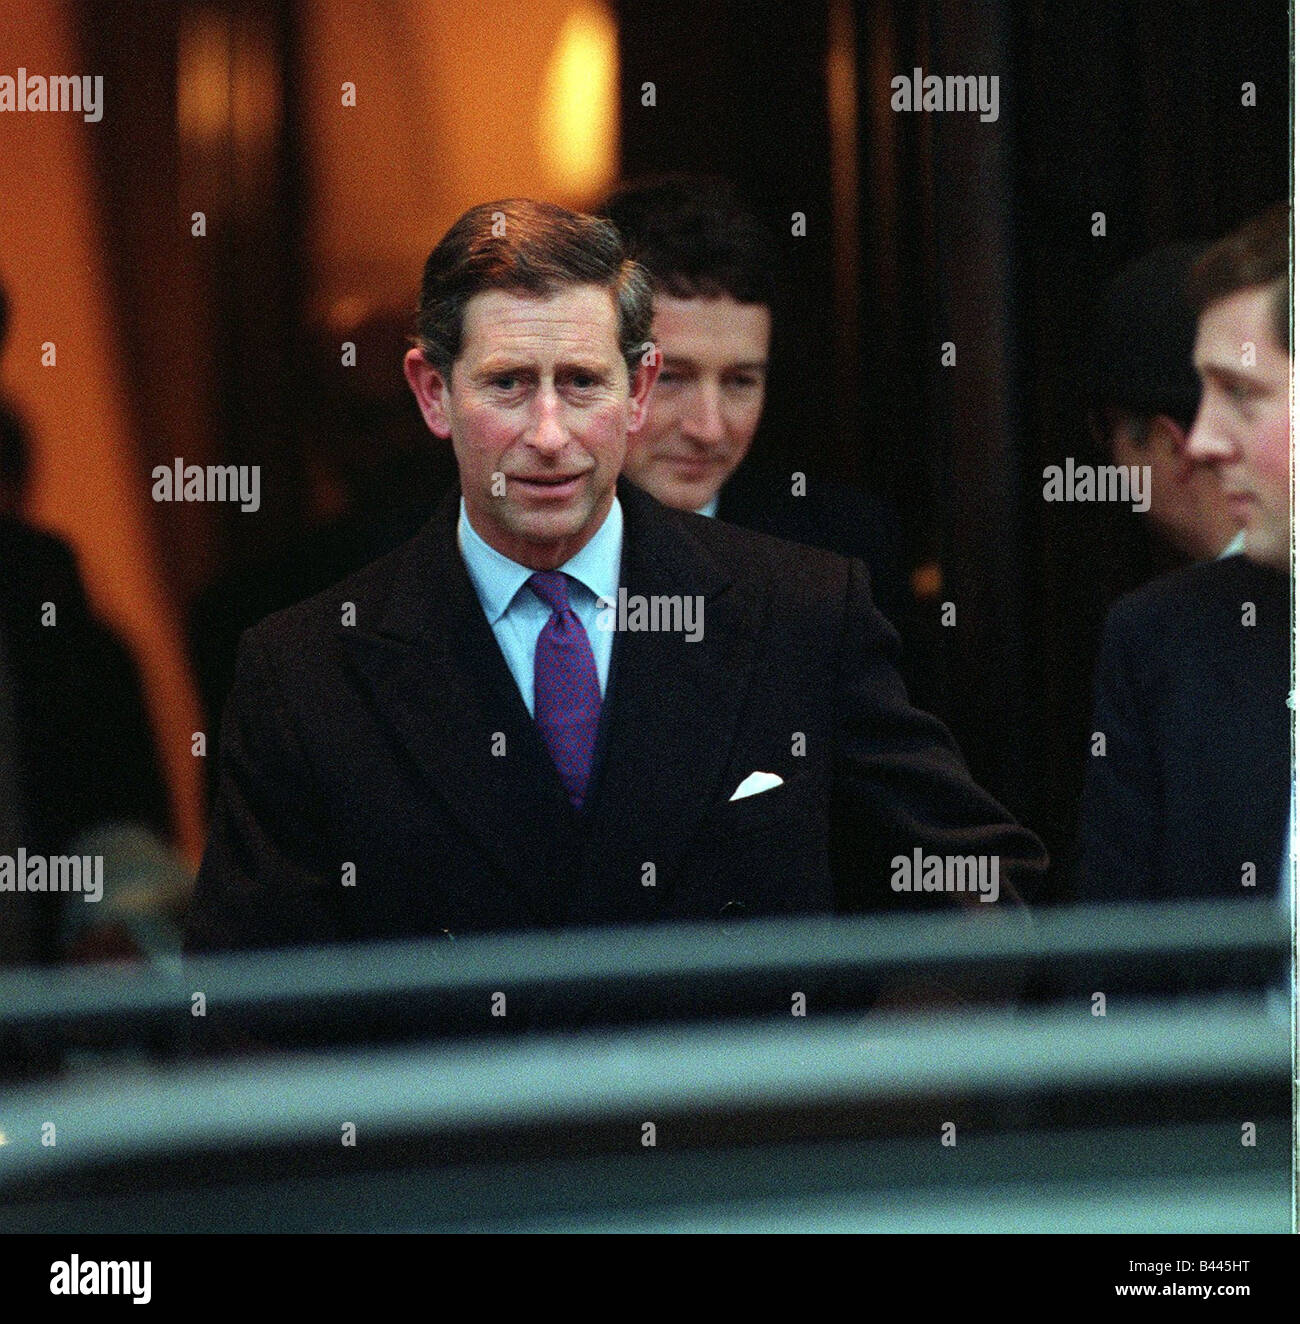 Prince Charles leaving the Lanesborough Hotel in London December 1995 - Stock Image